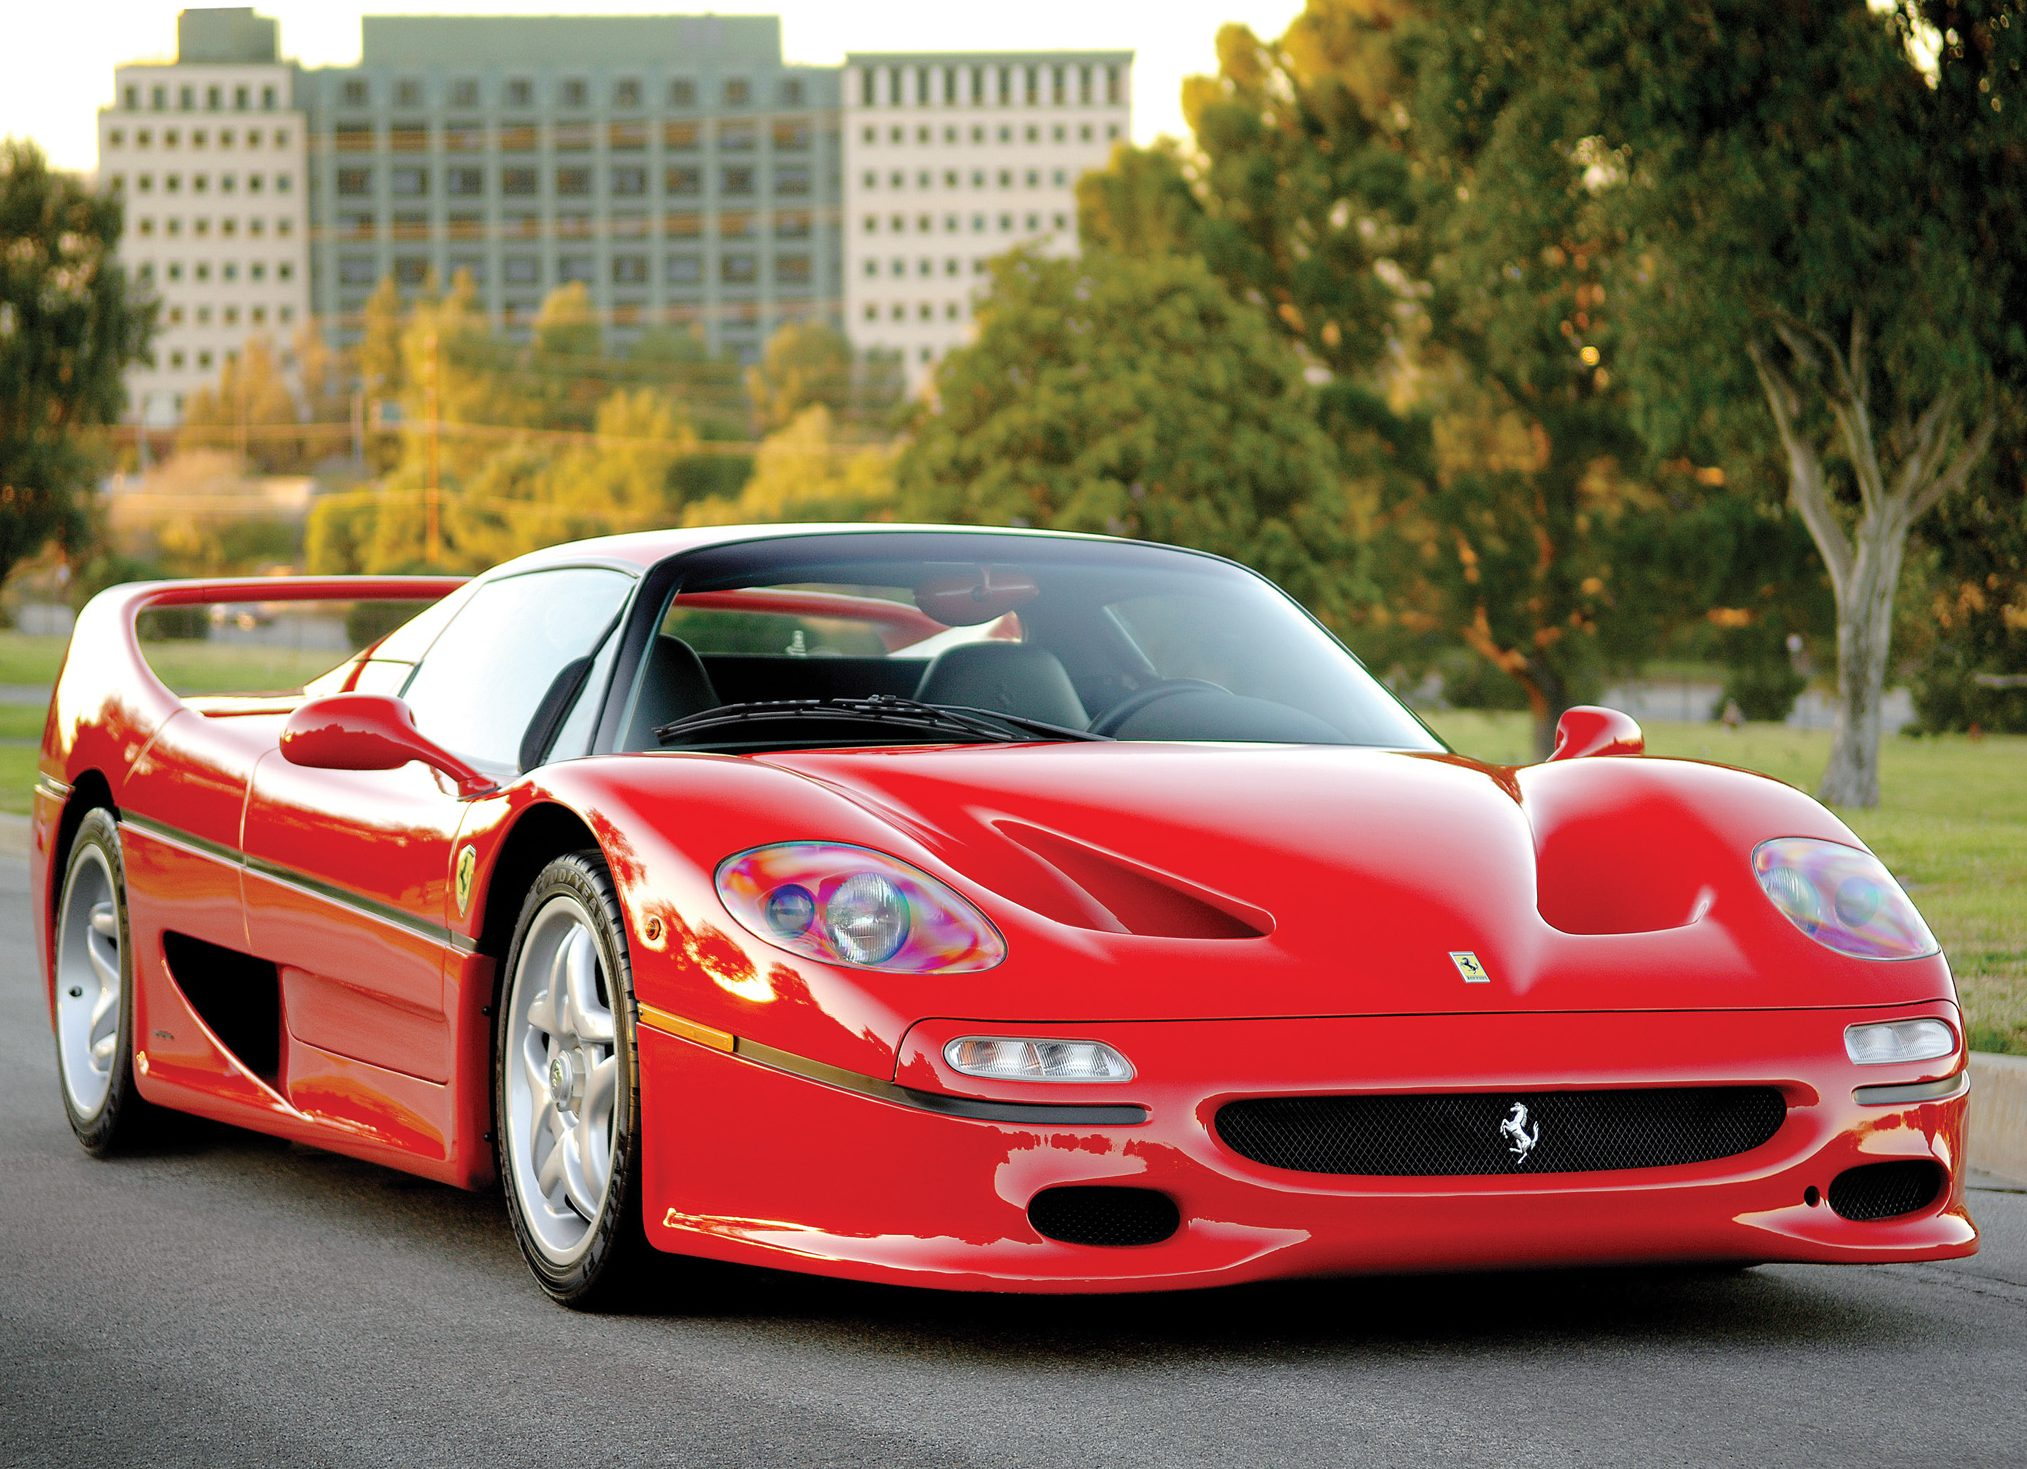 Ferrari F50 Best 90s Supercars